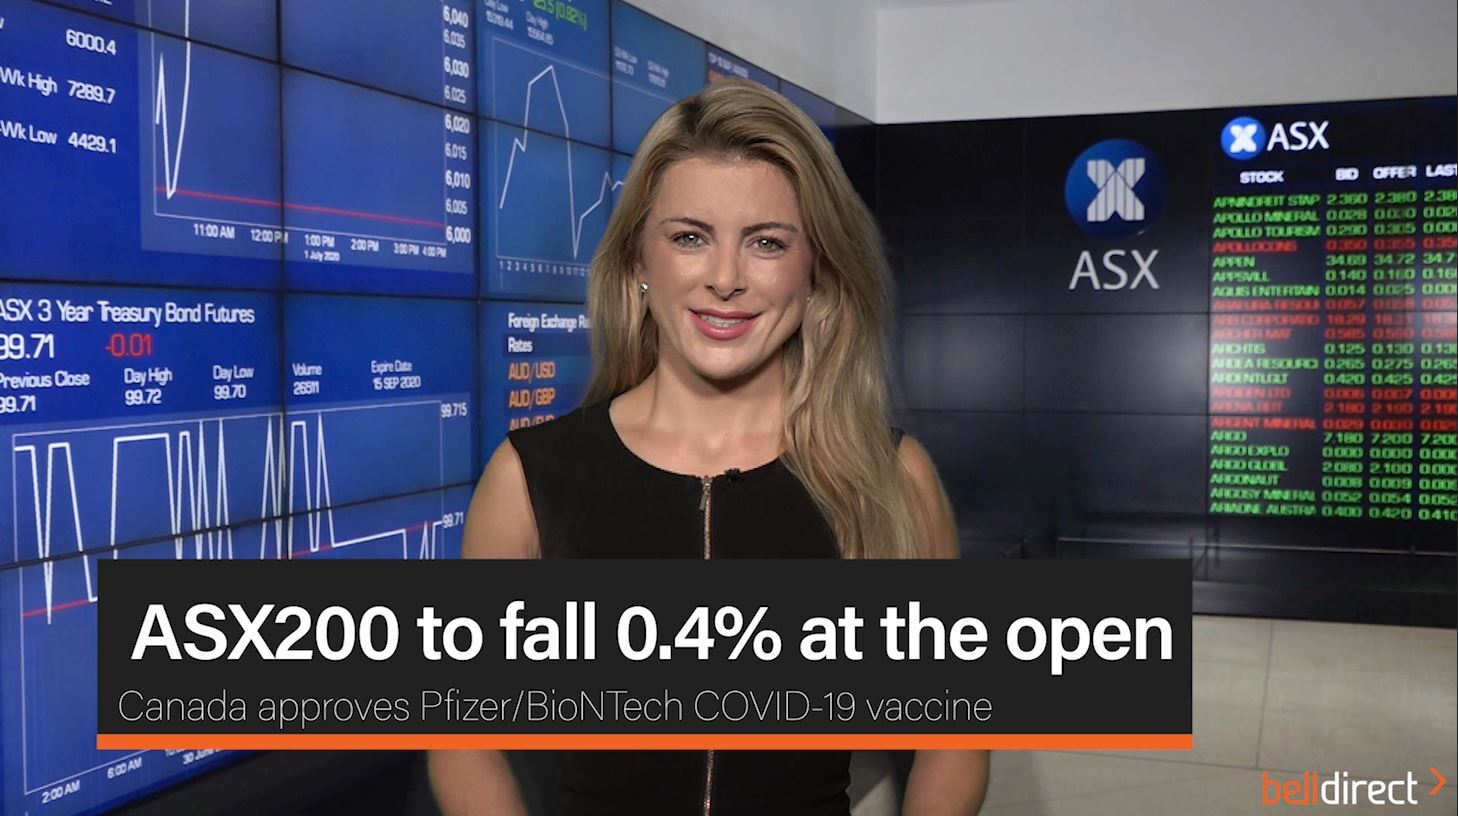 ASX200 to fall 0.4% at the open